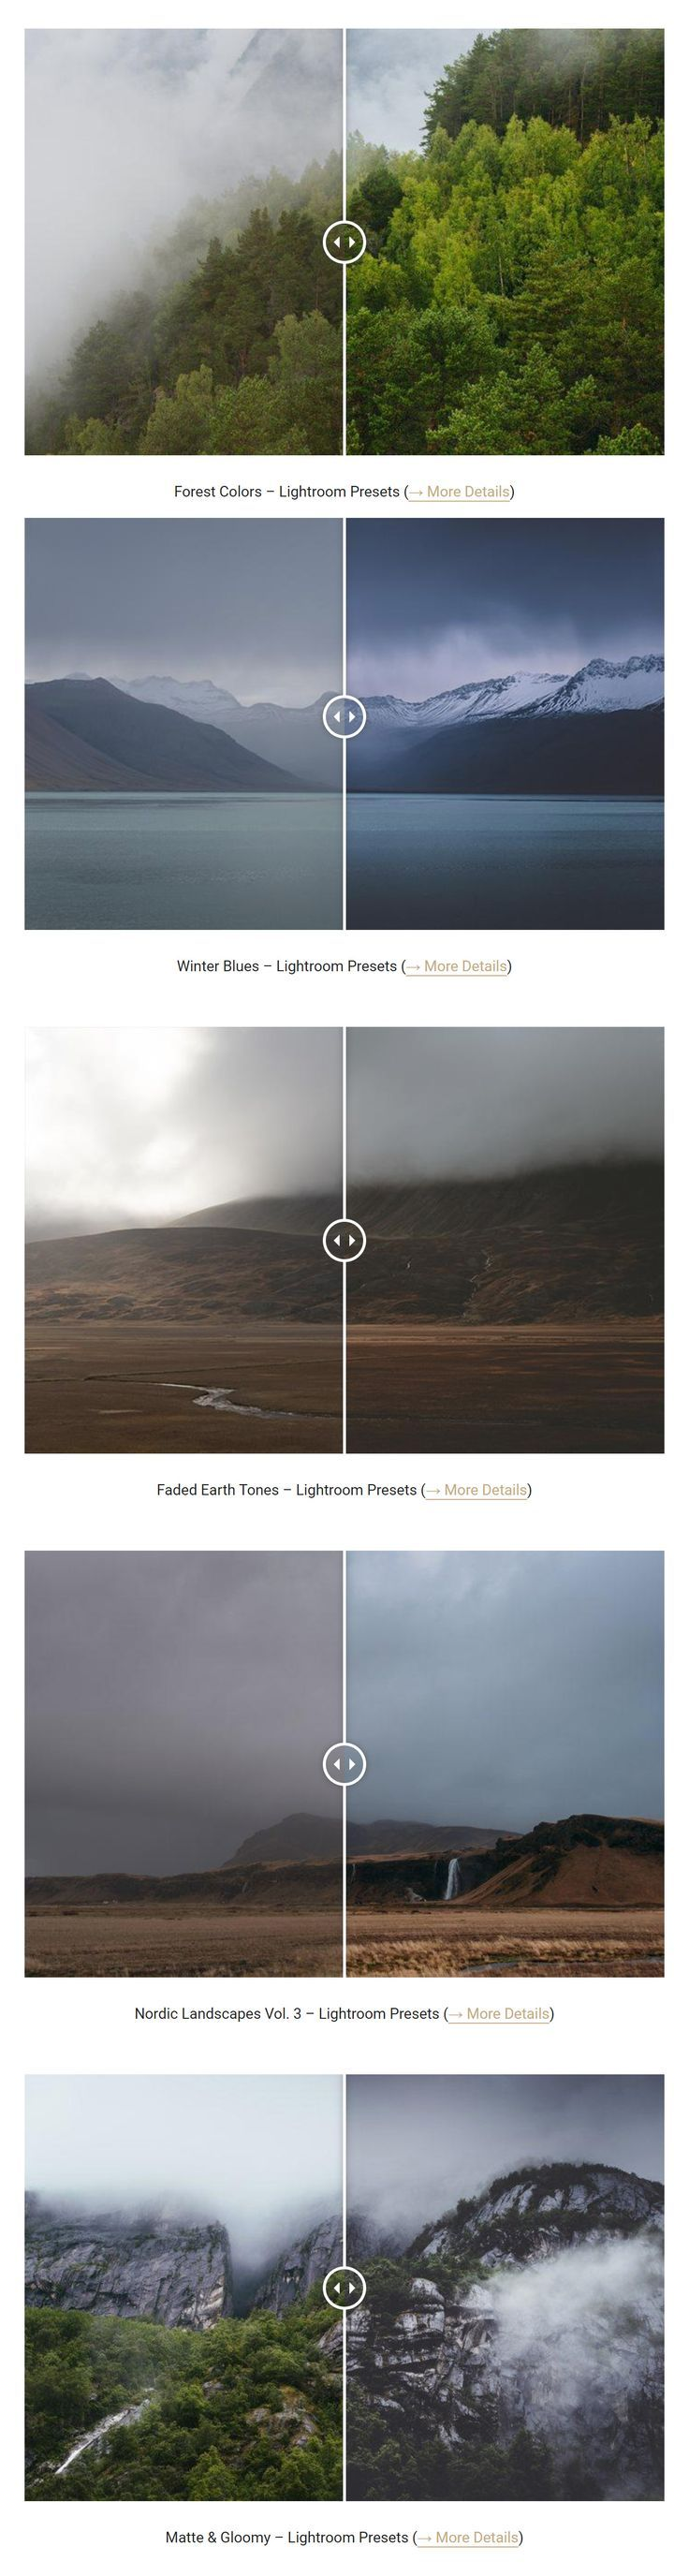 Lightroom before and after examples